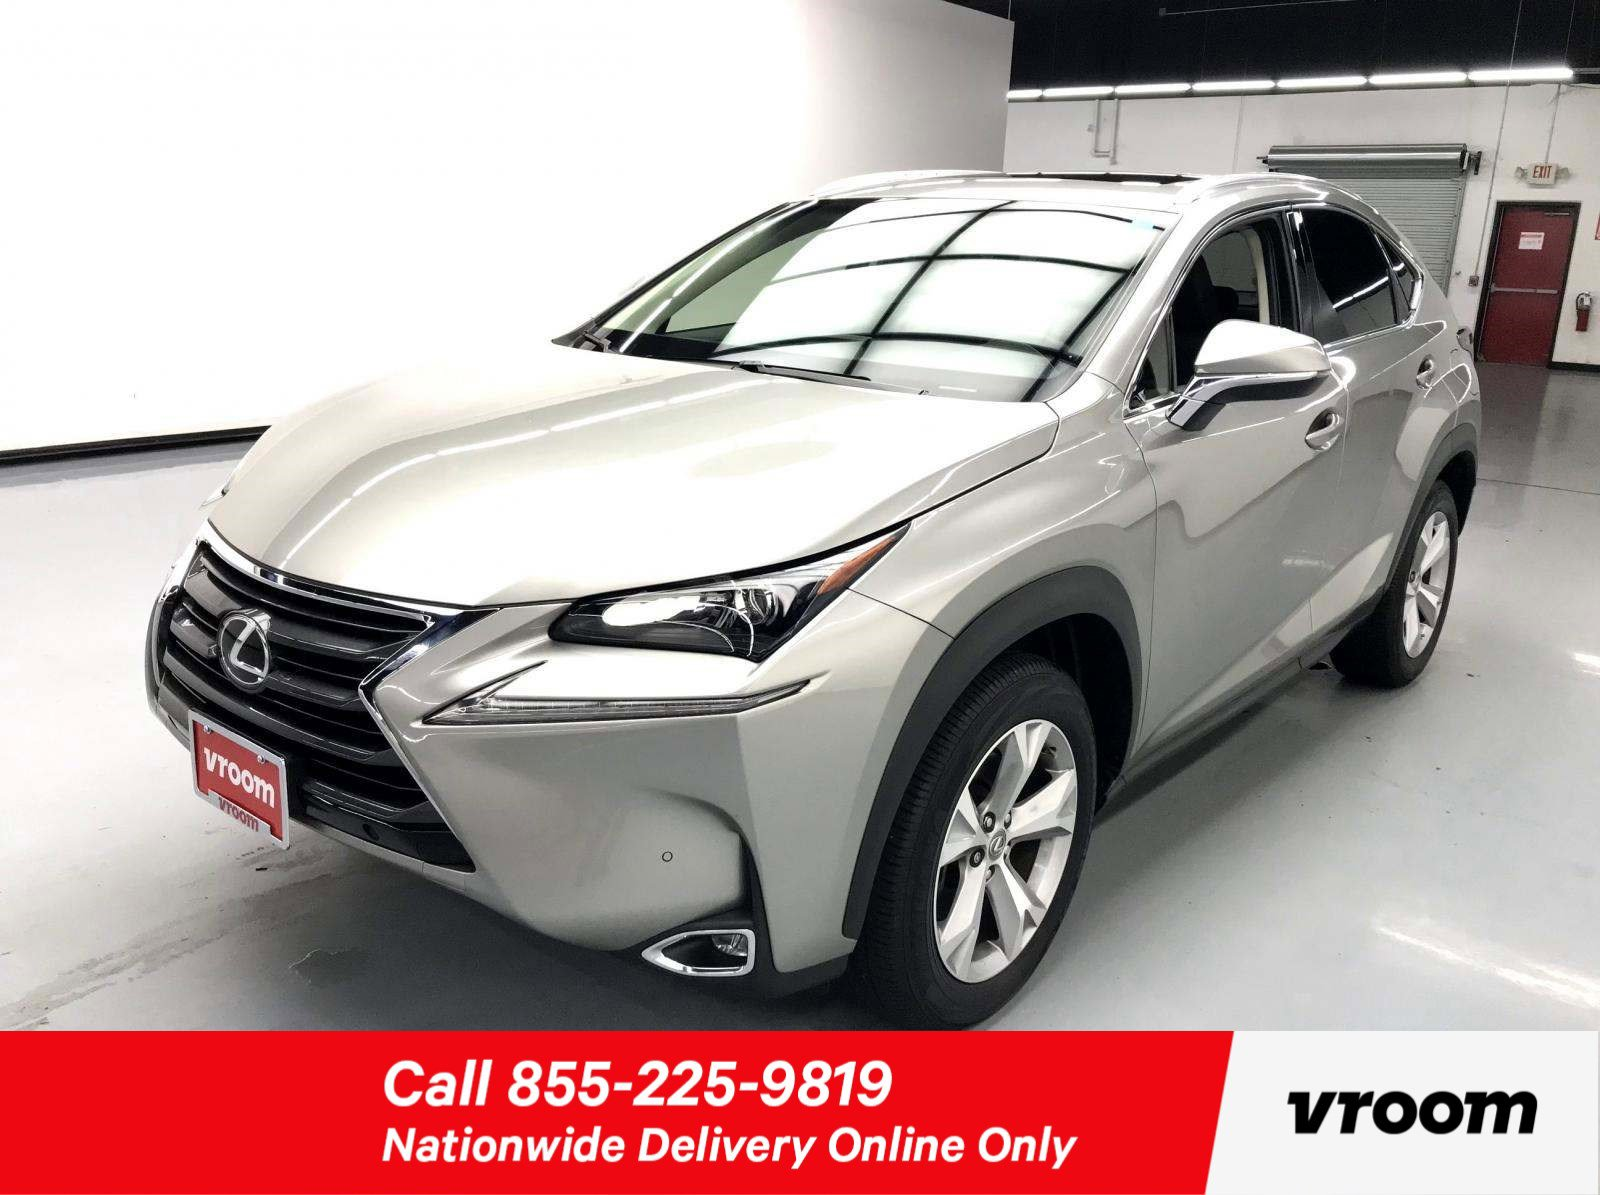 2017 Lexus NX 200t 4dr Crossover